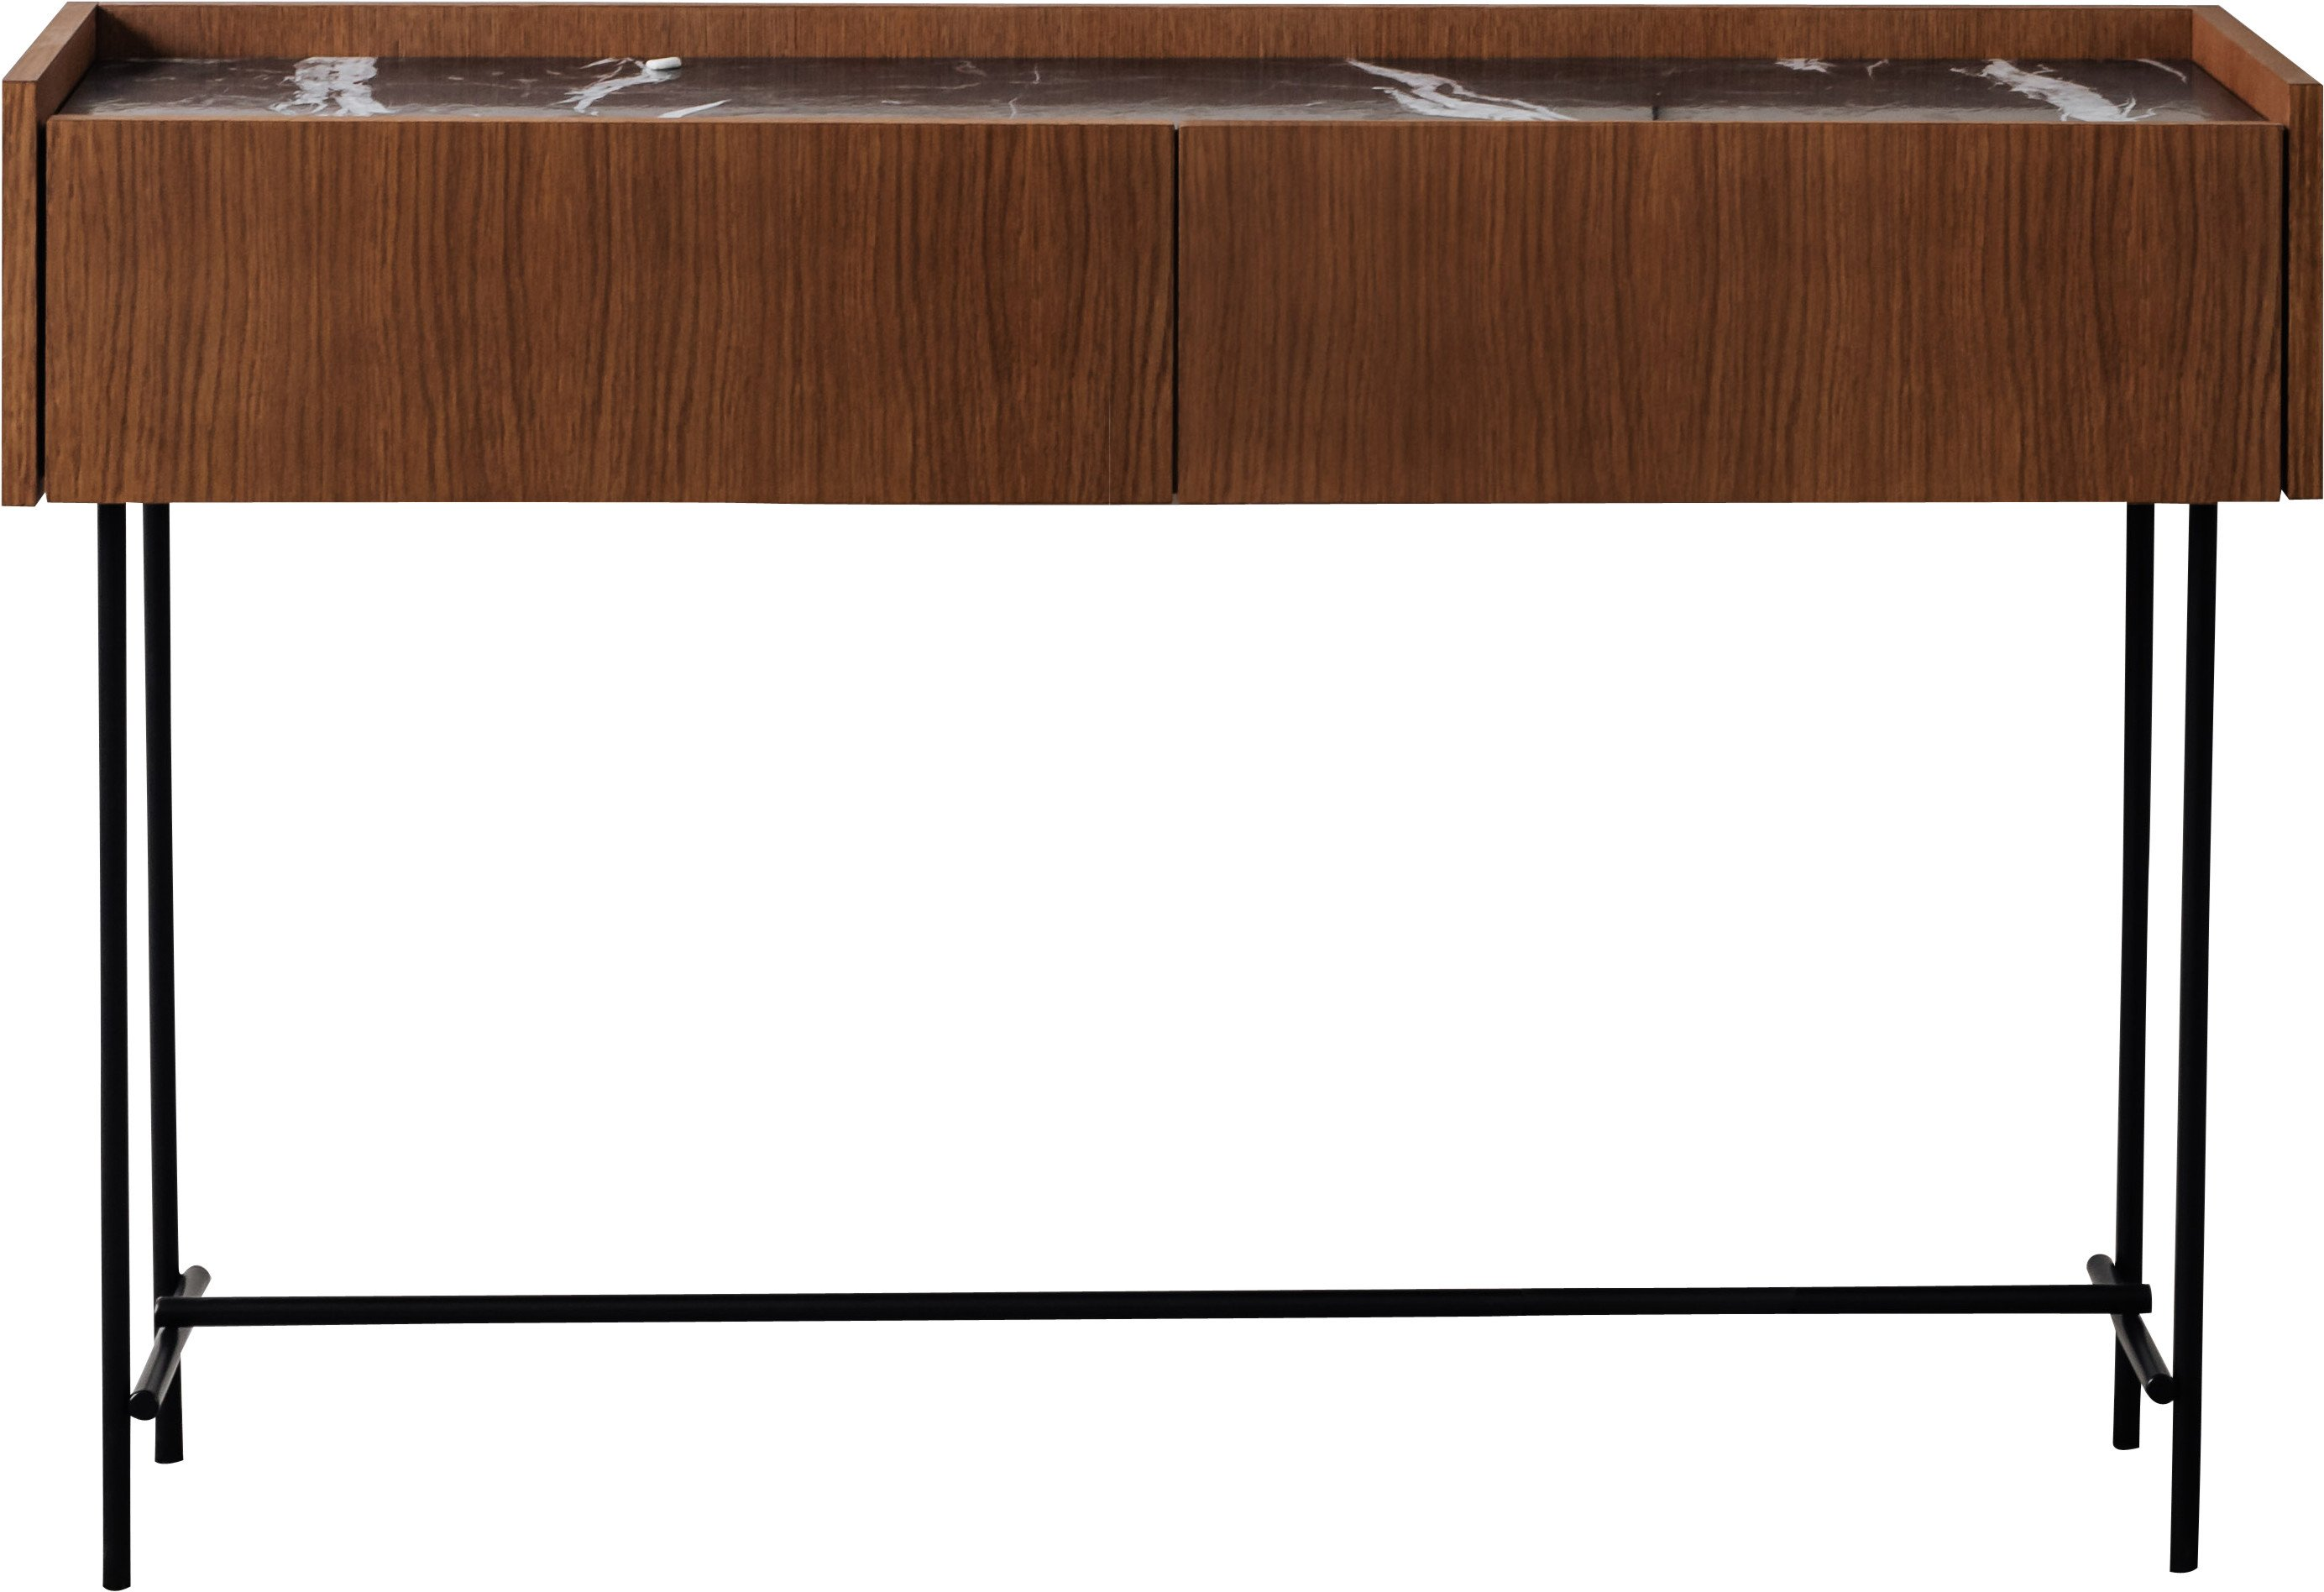 Forst Console Light Oak, Un'common